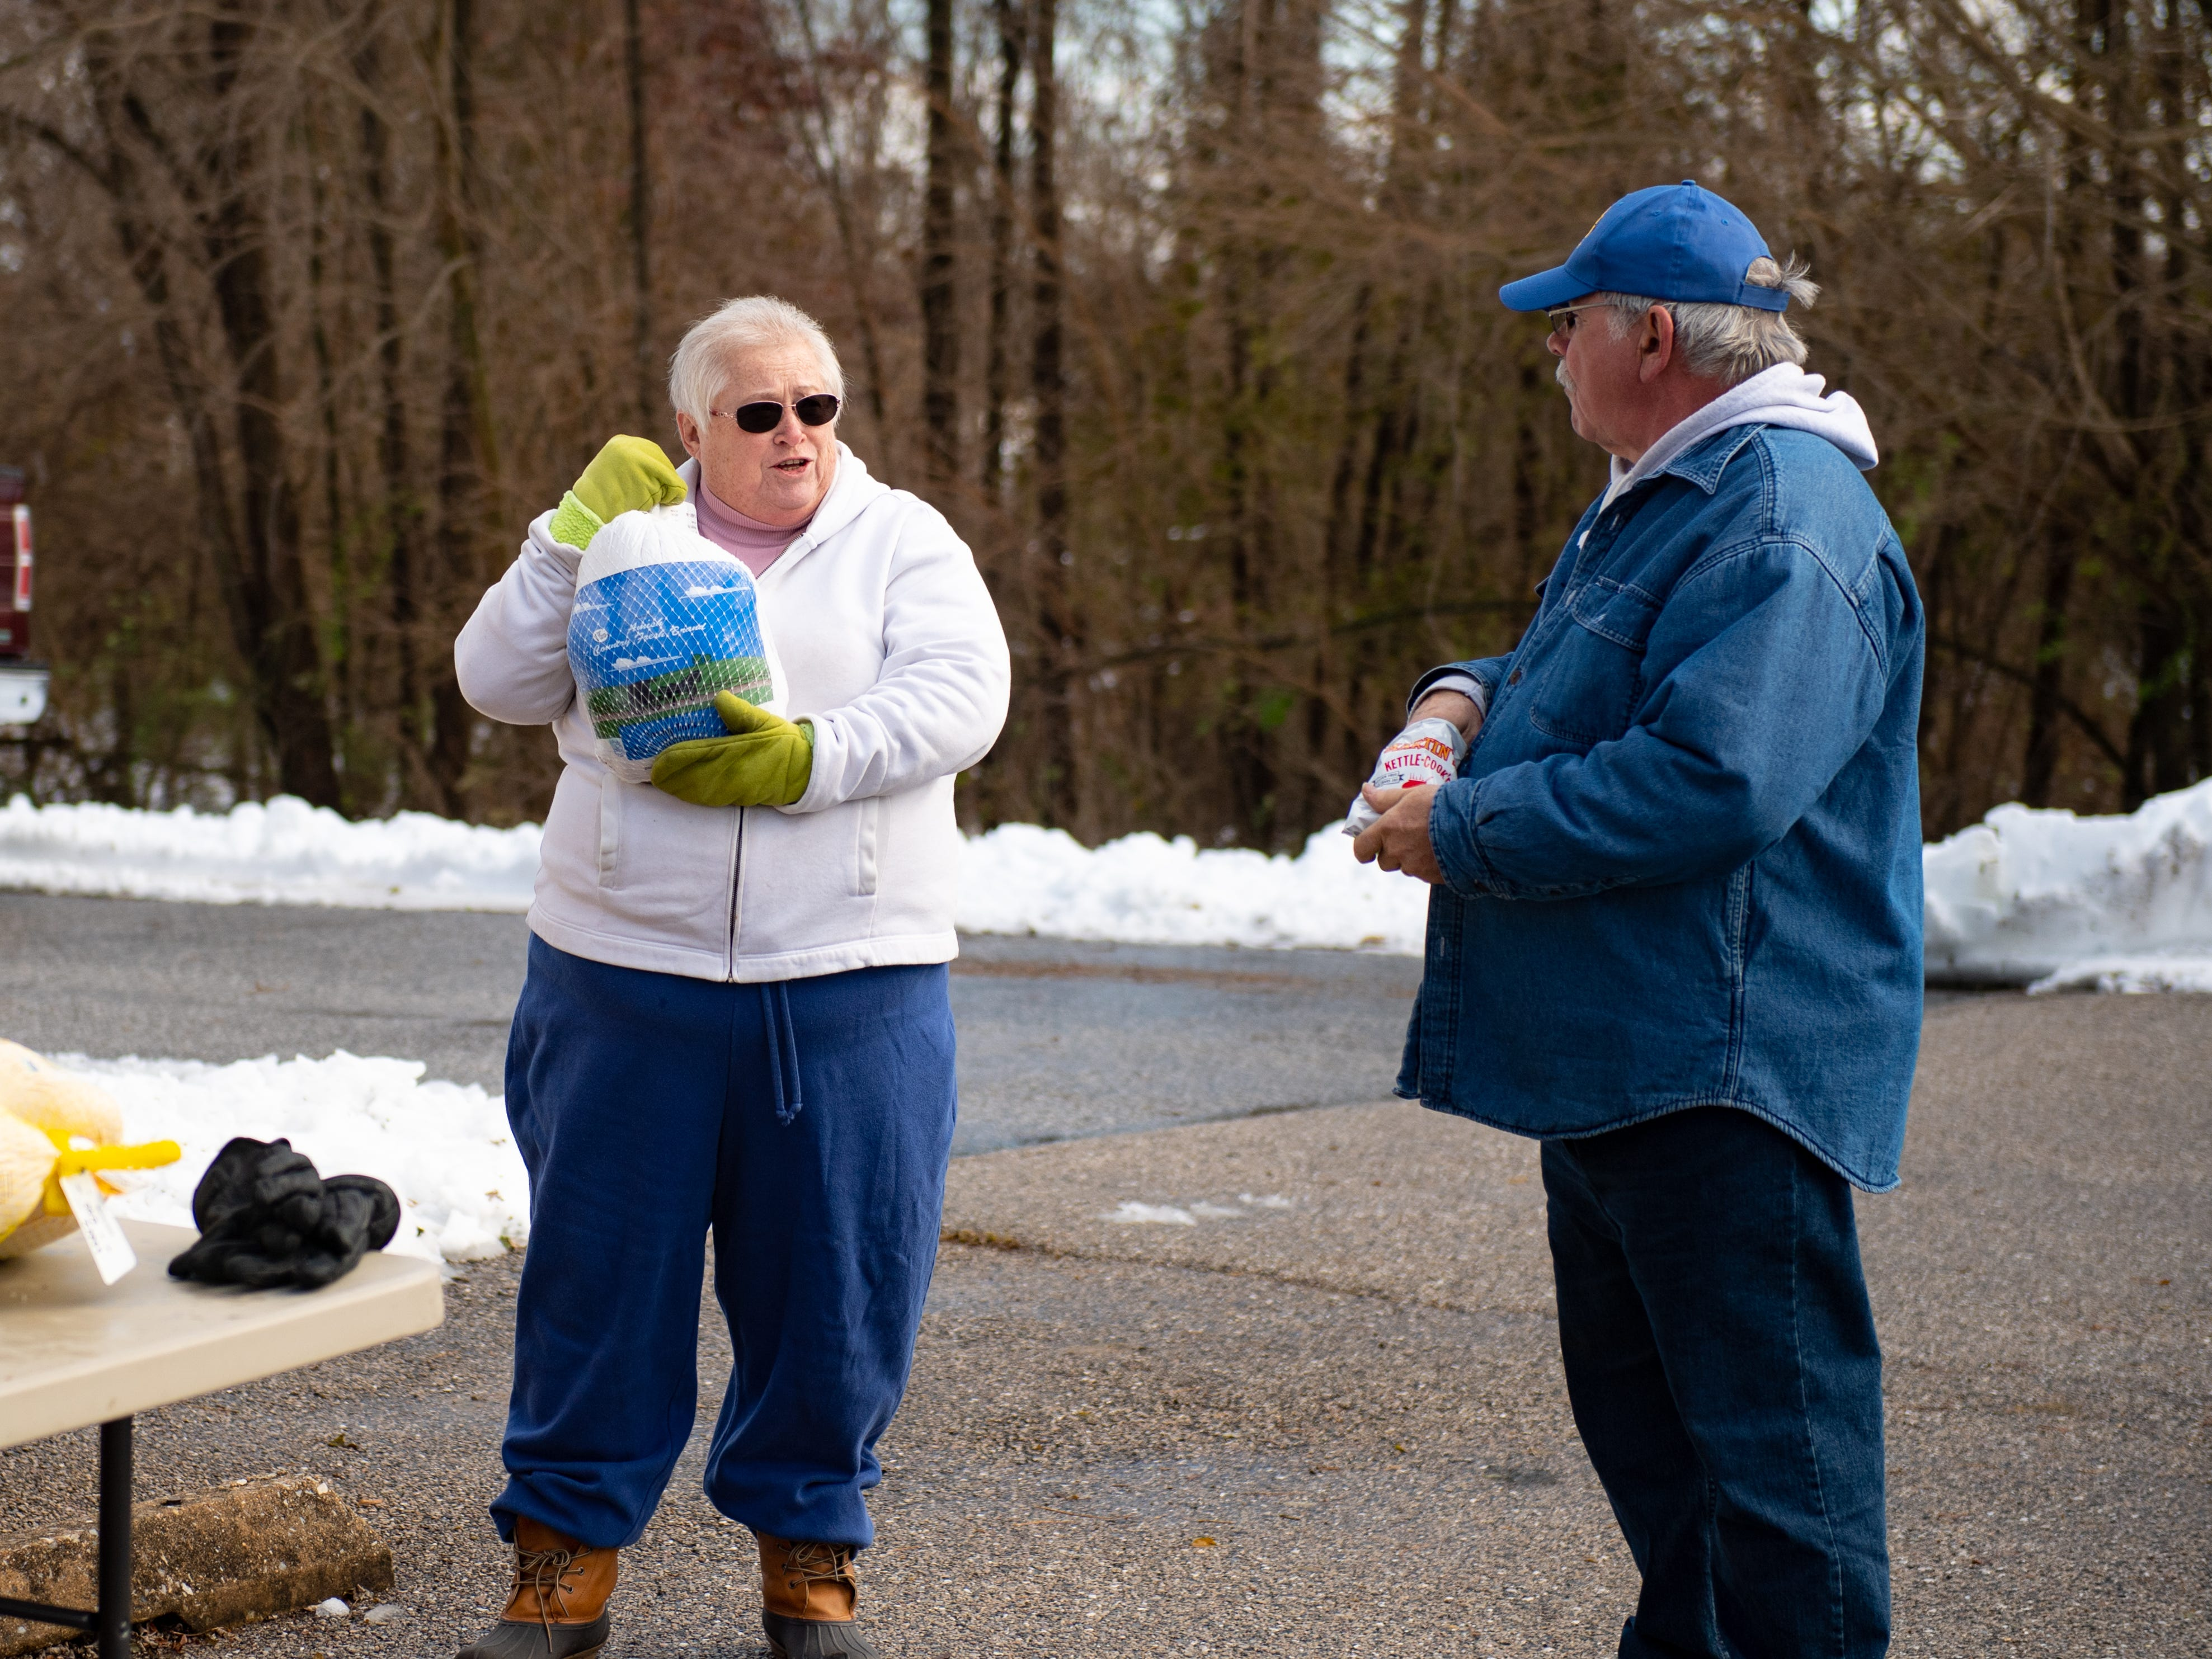 Carla Shermeyer shows Michael Neff the next turkey she'll hand out during the Thanksgiving food giveaway provided by New Hope Ministries, November 16, 2018.